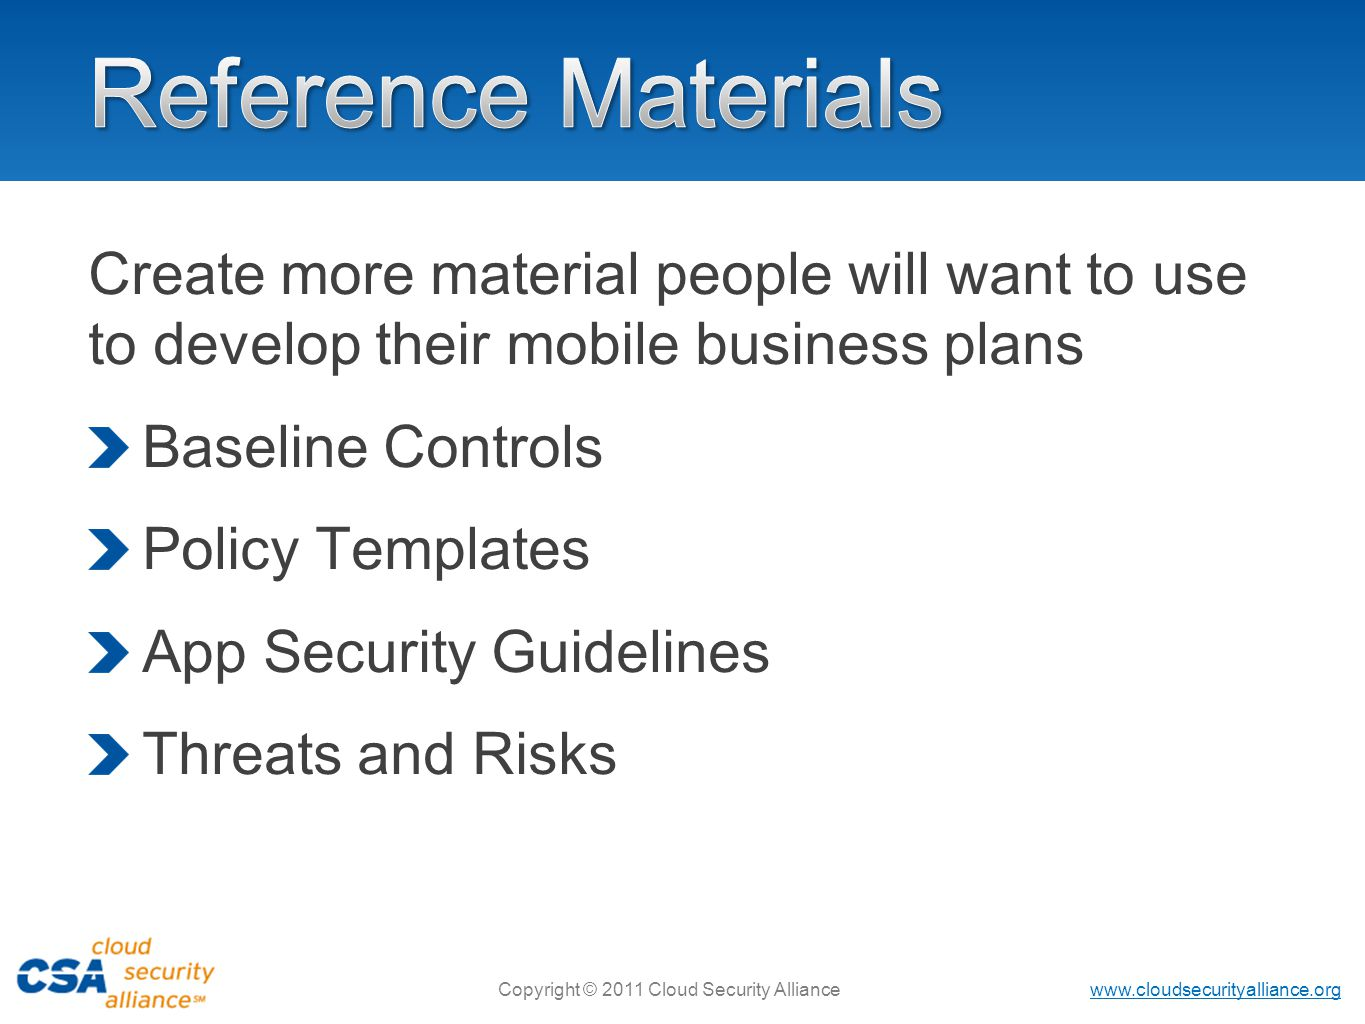 Reference Materials Create more material people will want to use to develop their mobile business plans.